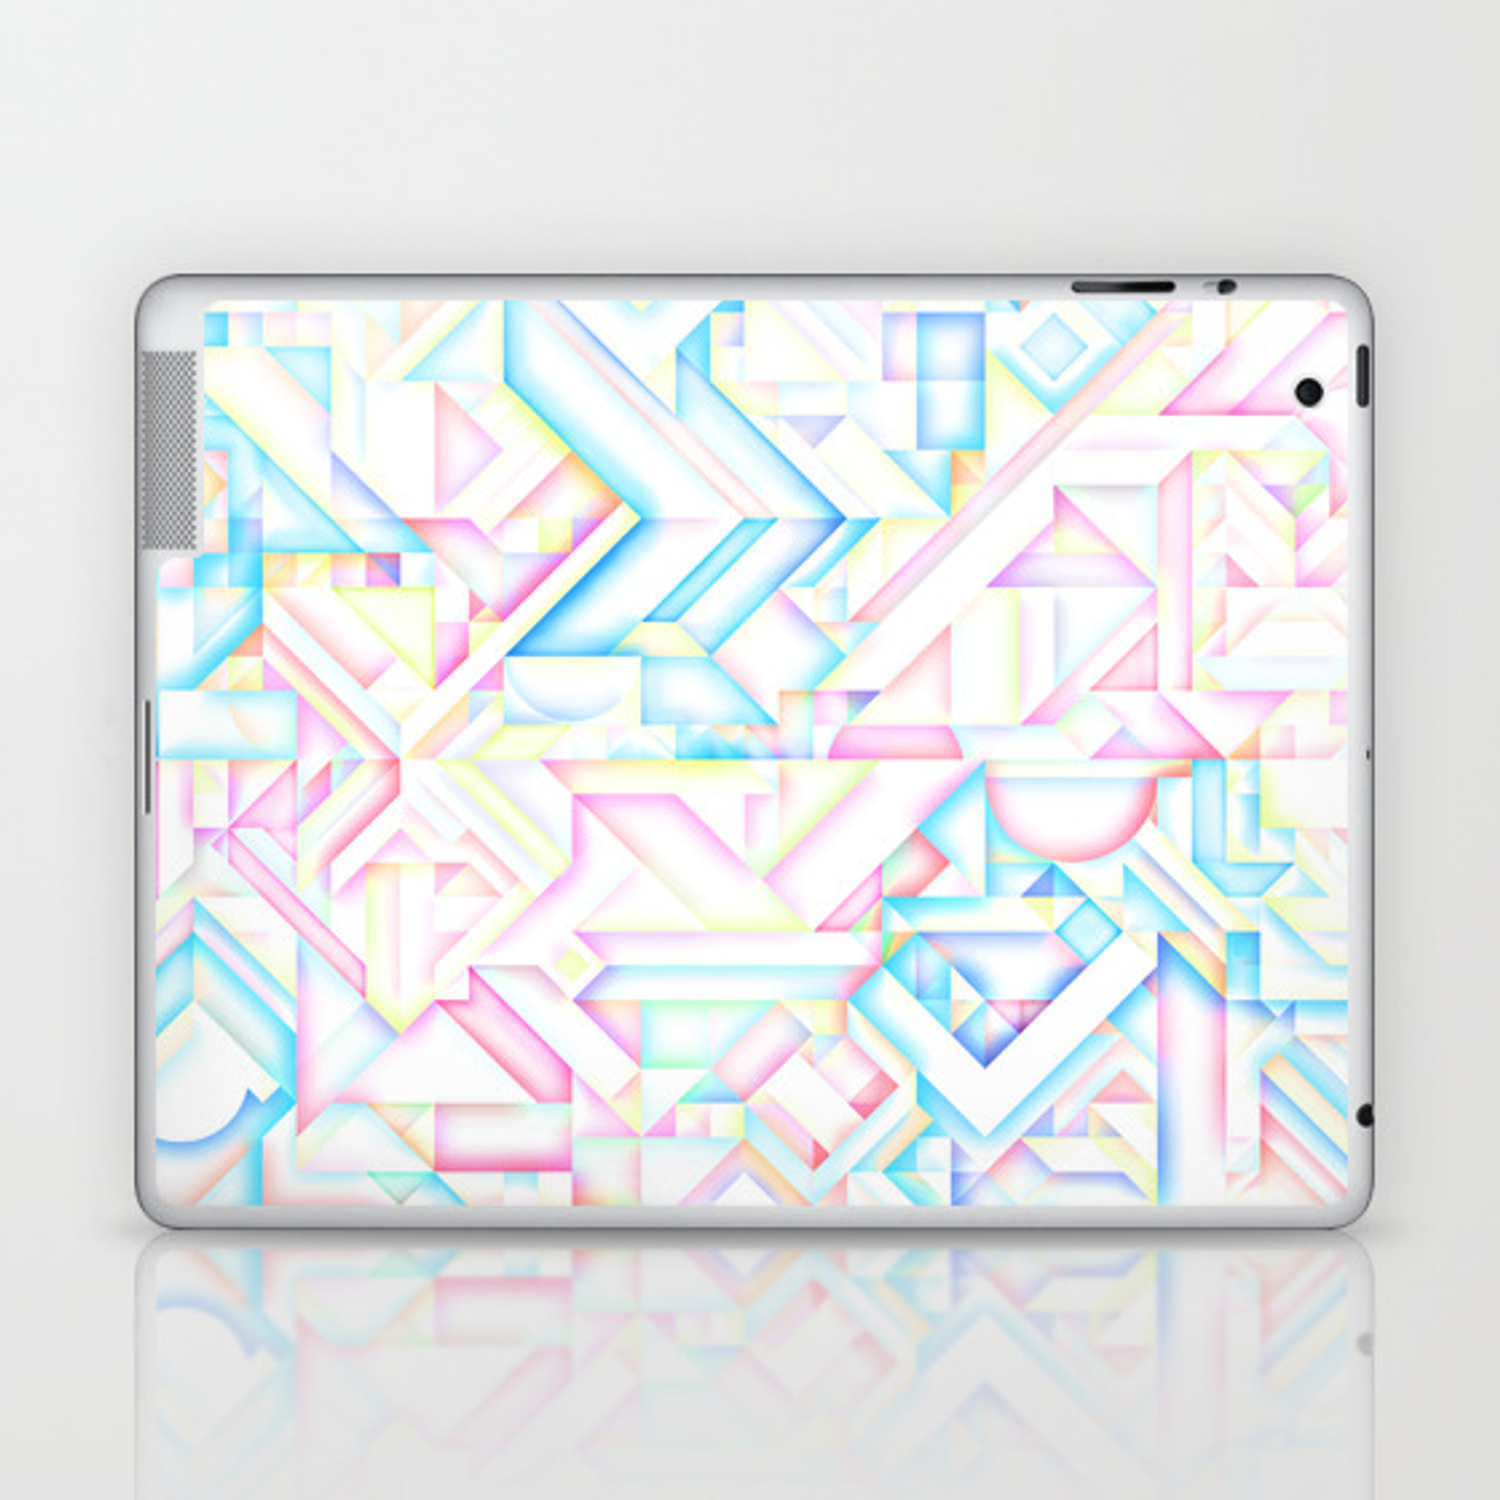 90s Inspired Print Geometric Pastel Bright Shapes Pattern Graphic Design Laptop Ipad Skin By Aej Design